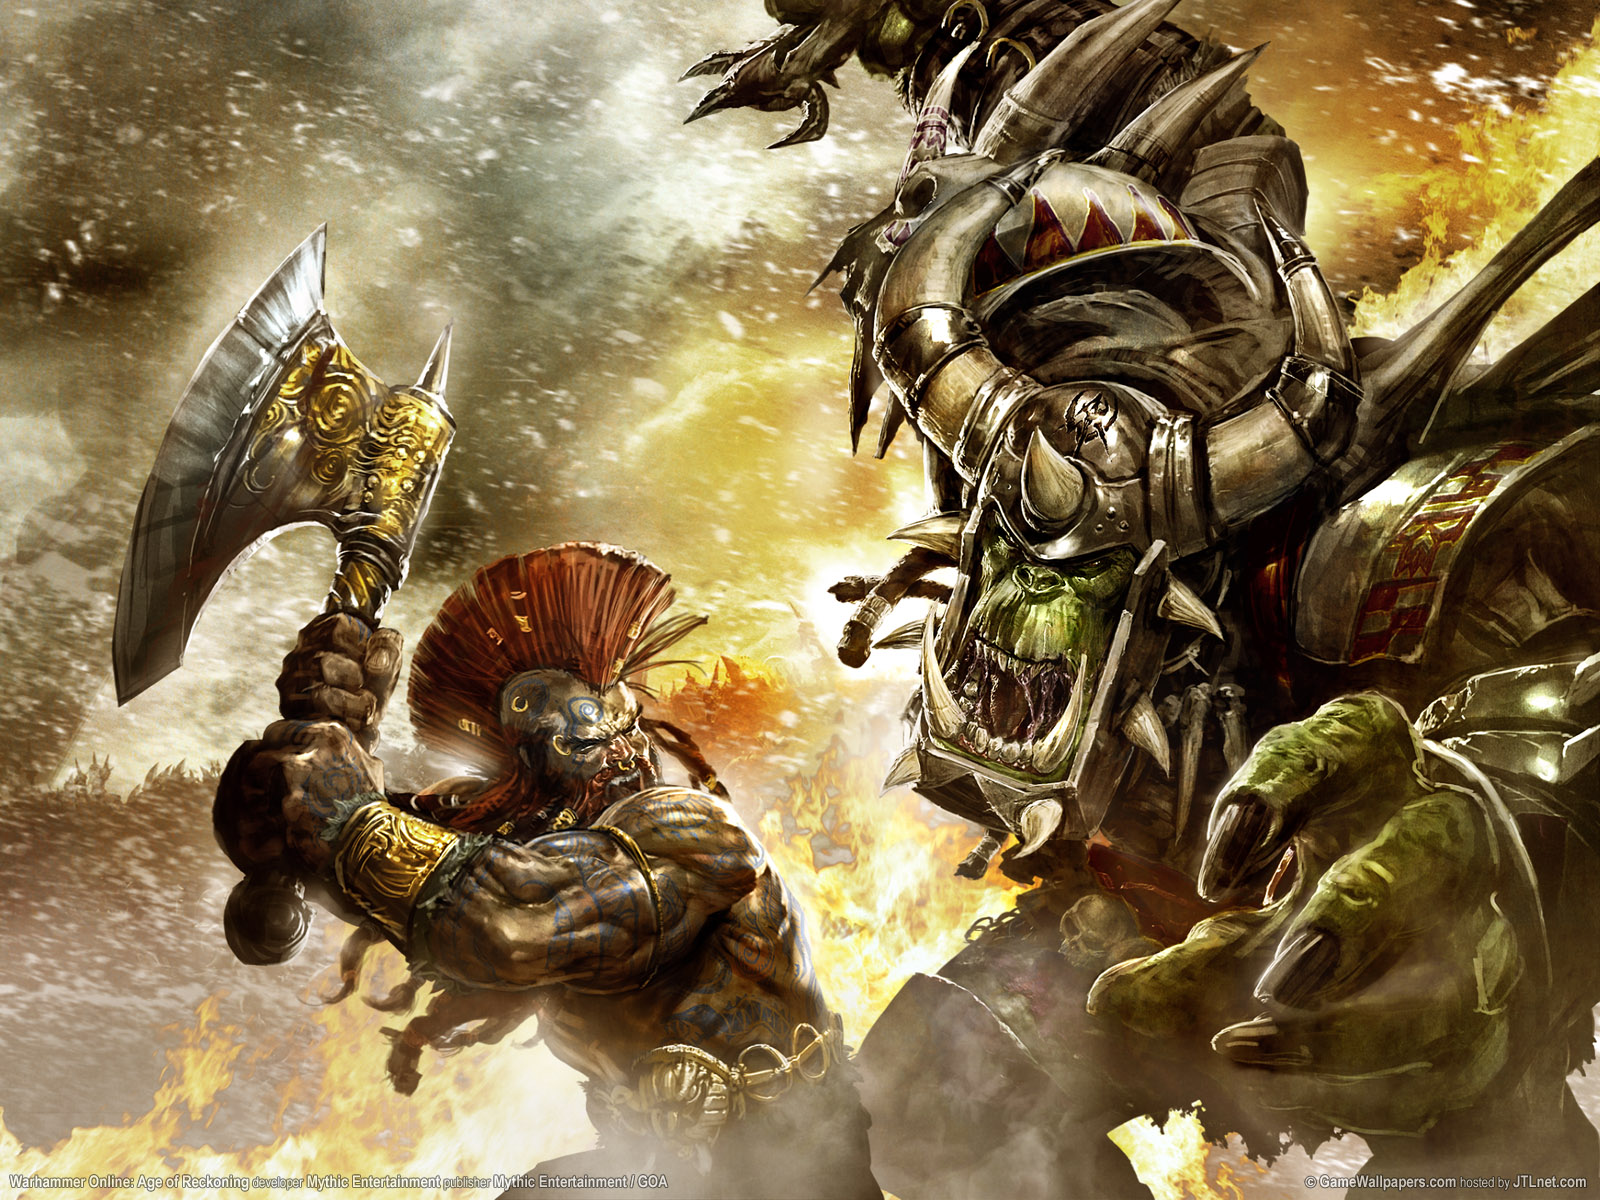 Gameboy Iphone X Wallpaper Warhammer Online Wallpapers Warhammer Online Stock Photos